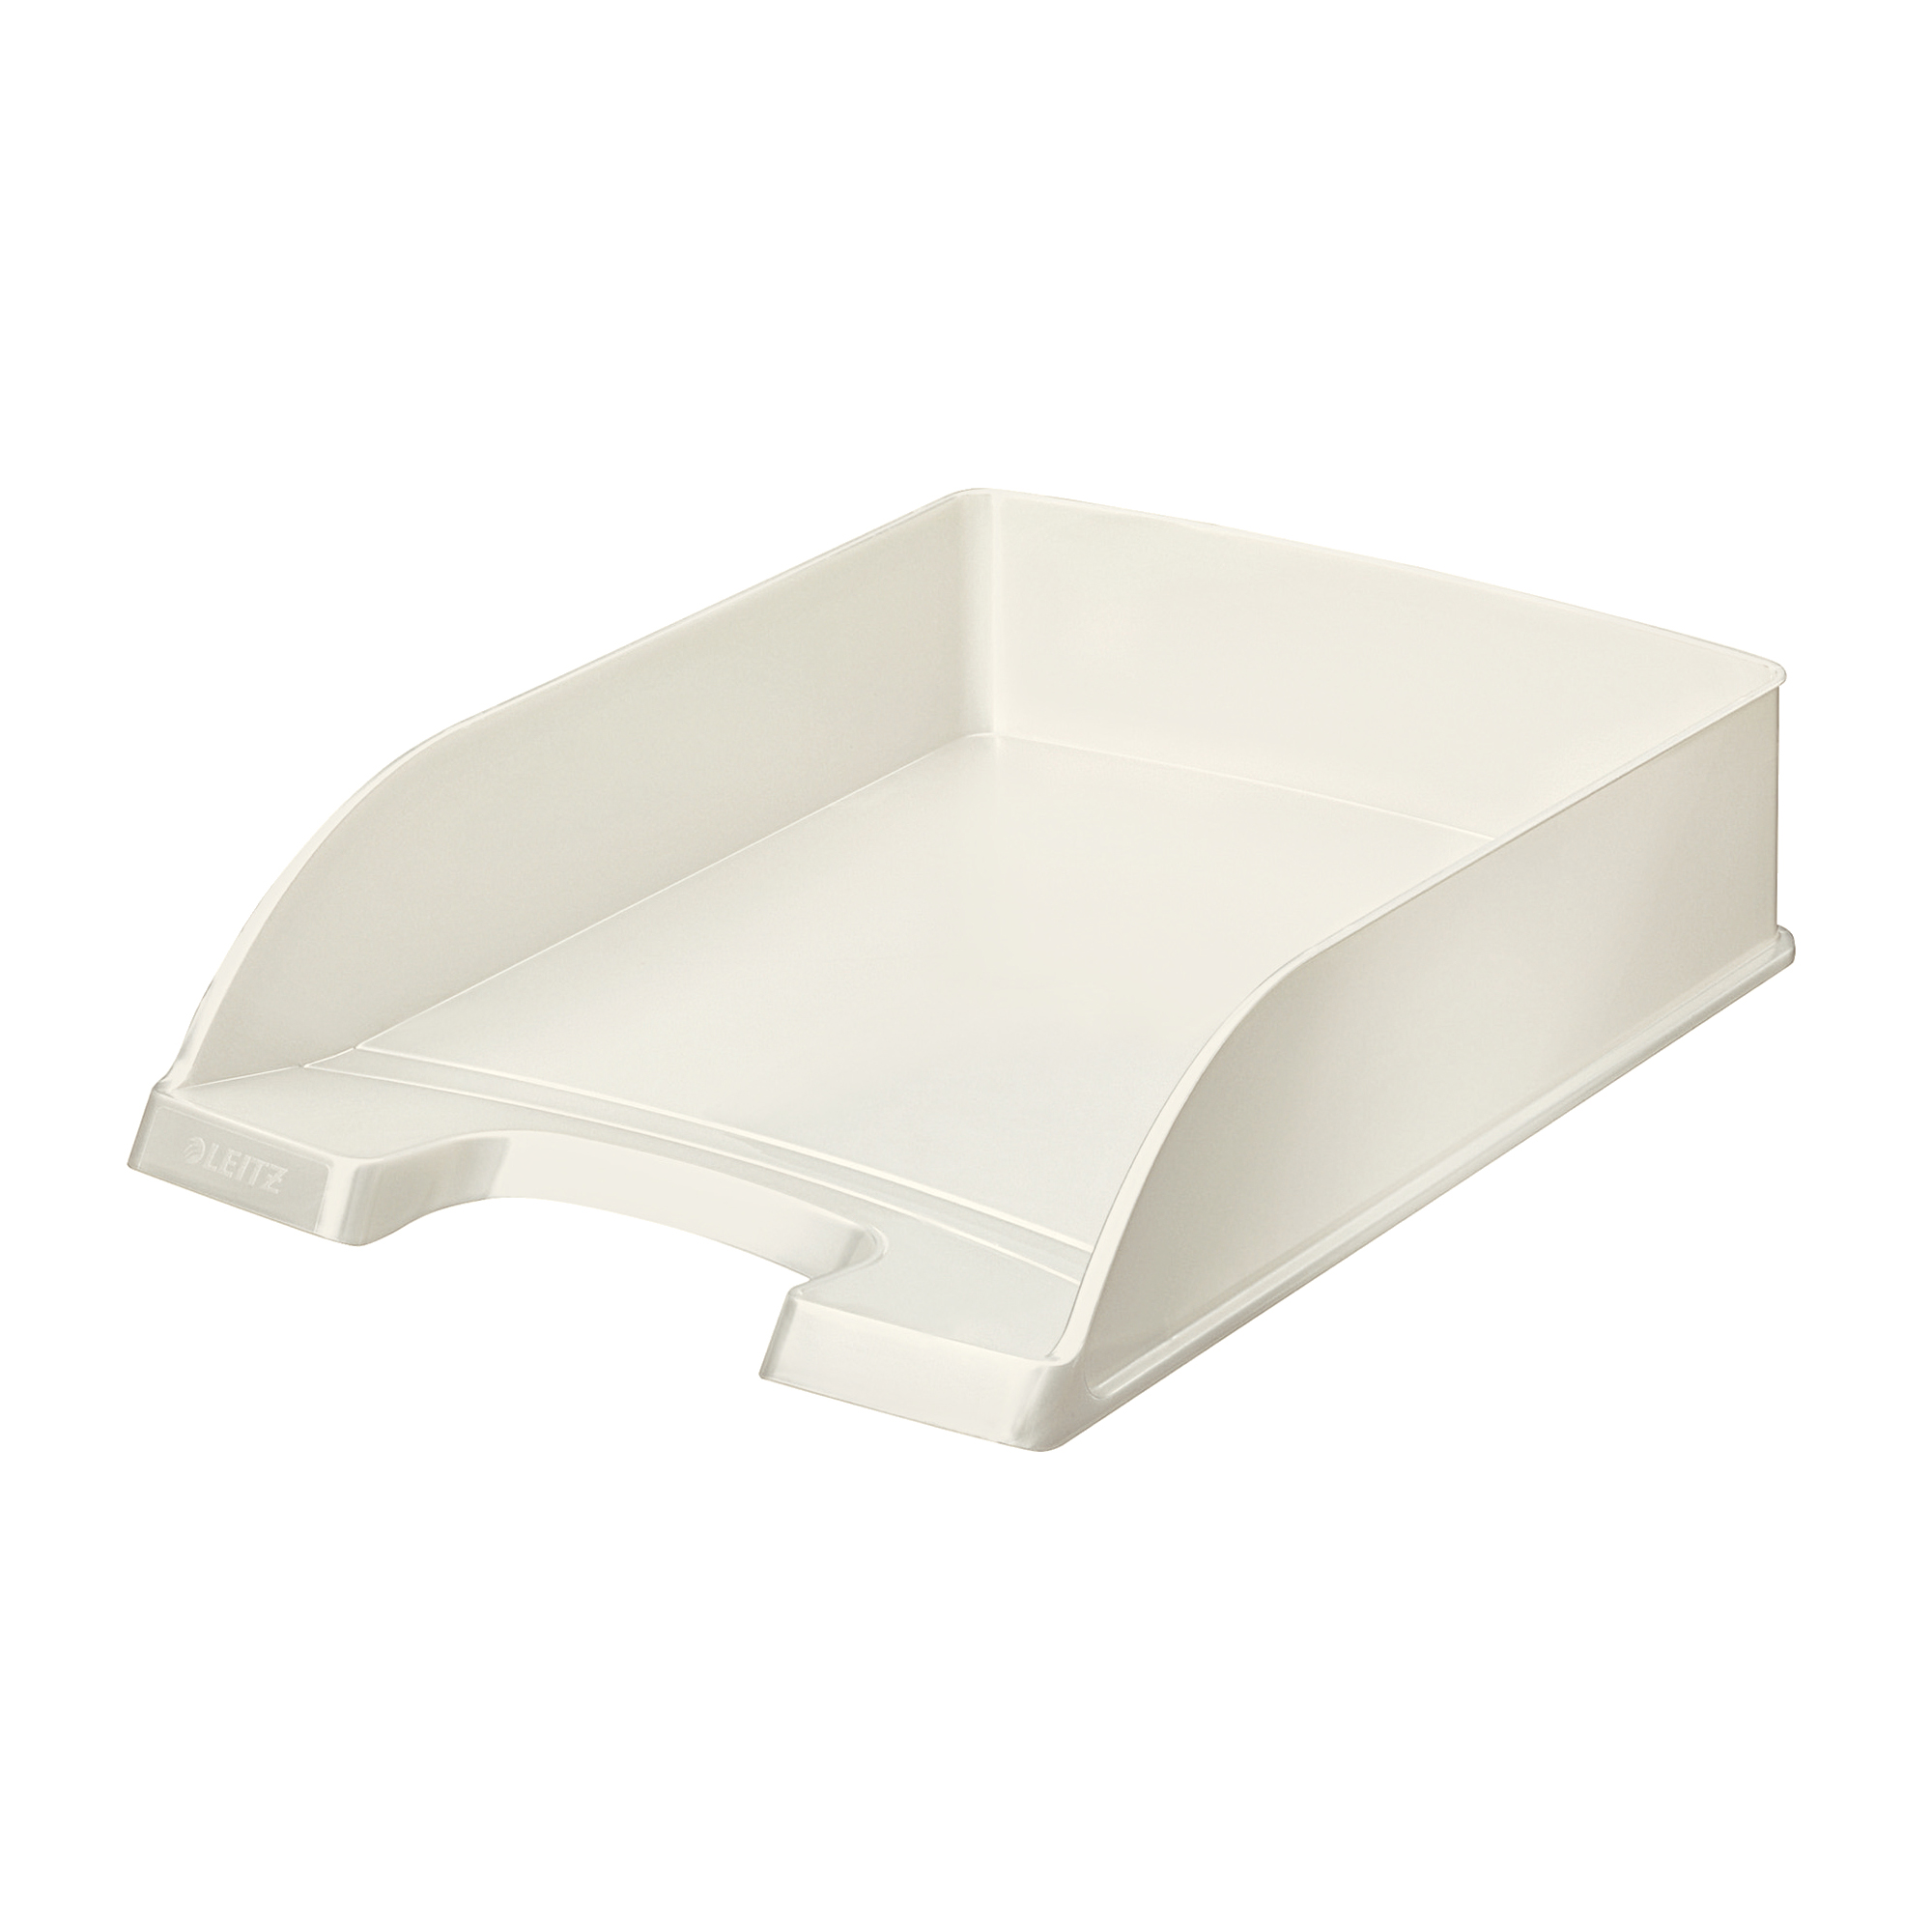 Letter Trays Leitz WOW Letter Tray Stackable Glossy White Pearl Ref 52263001